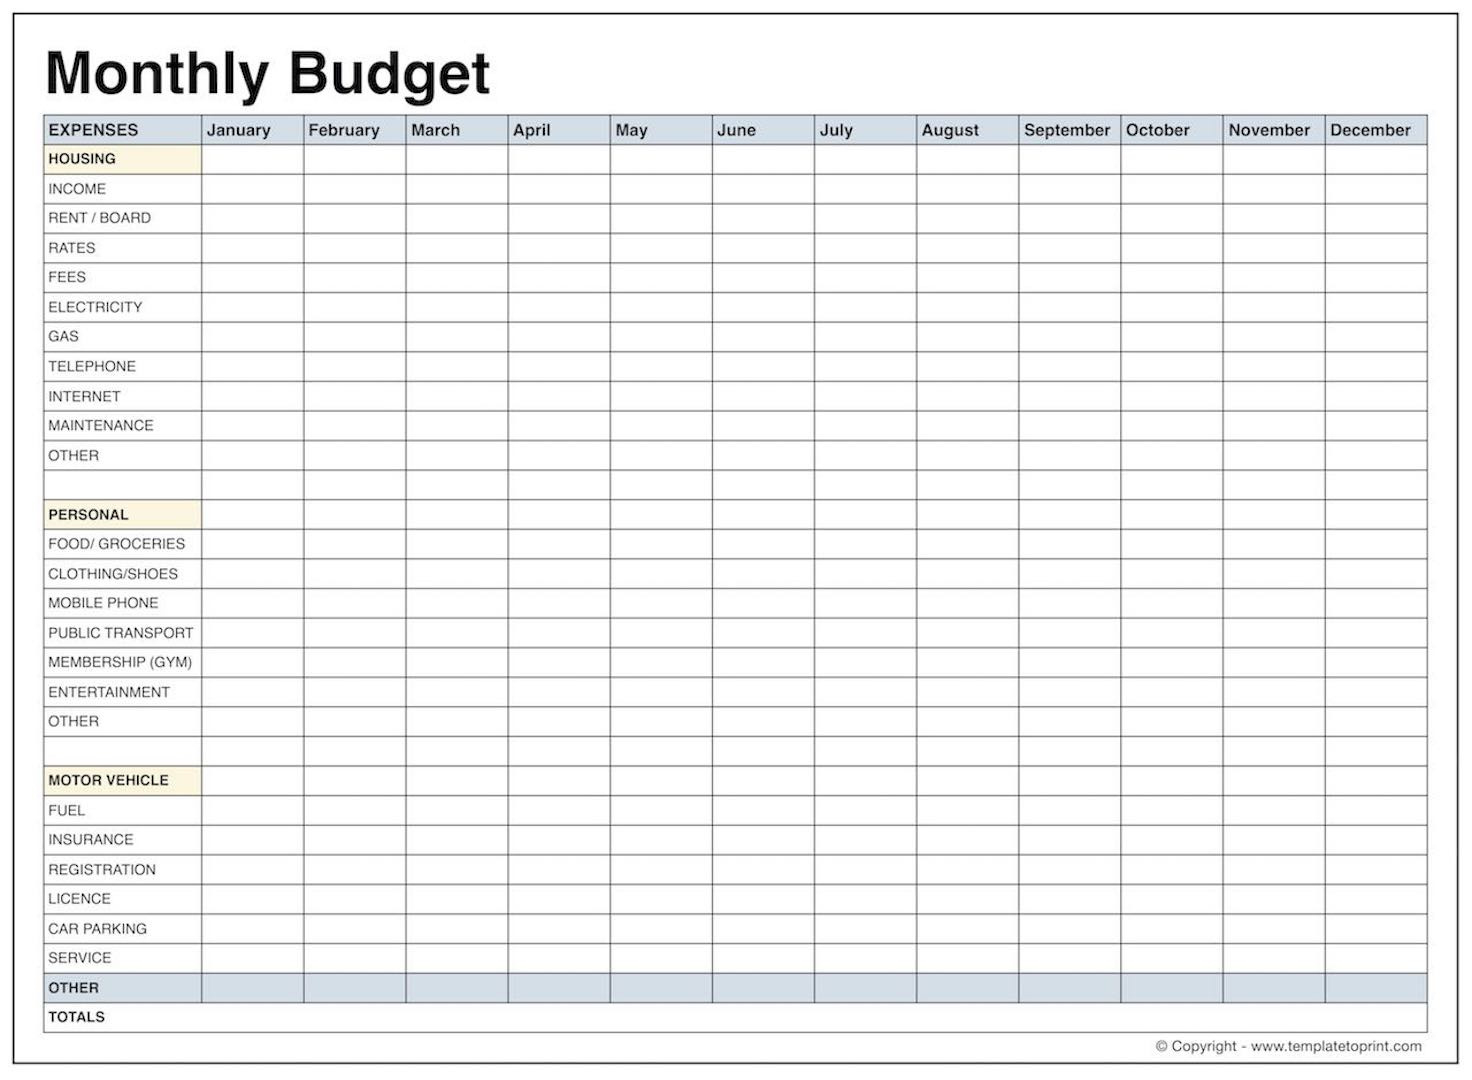 Daily Budget Spreadsheet Family Template Free E2 80 93